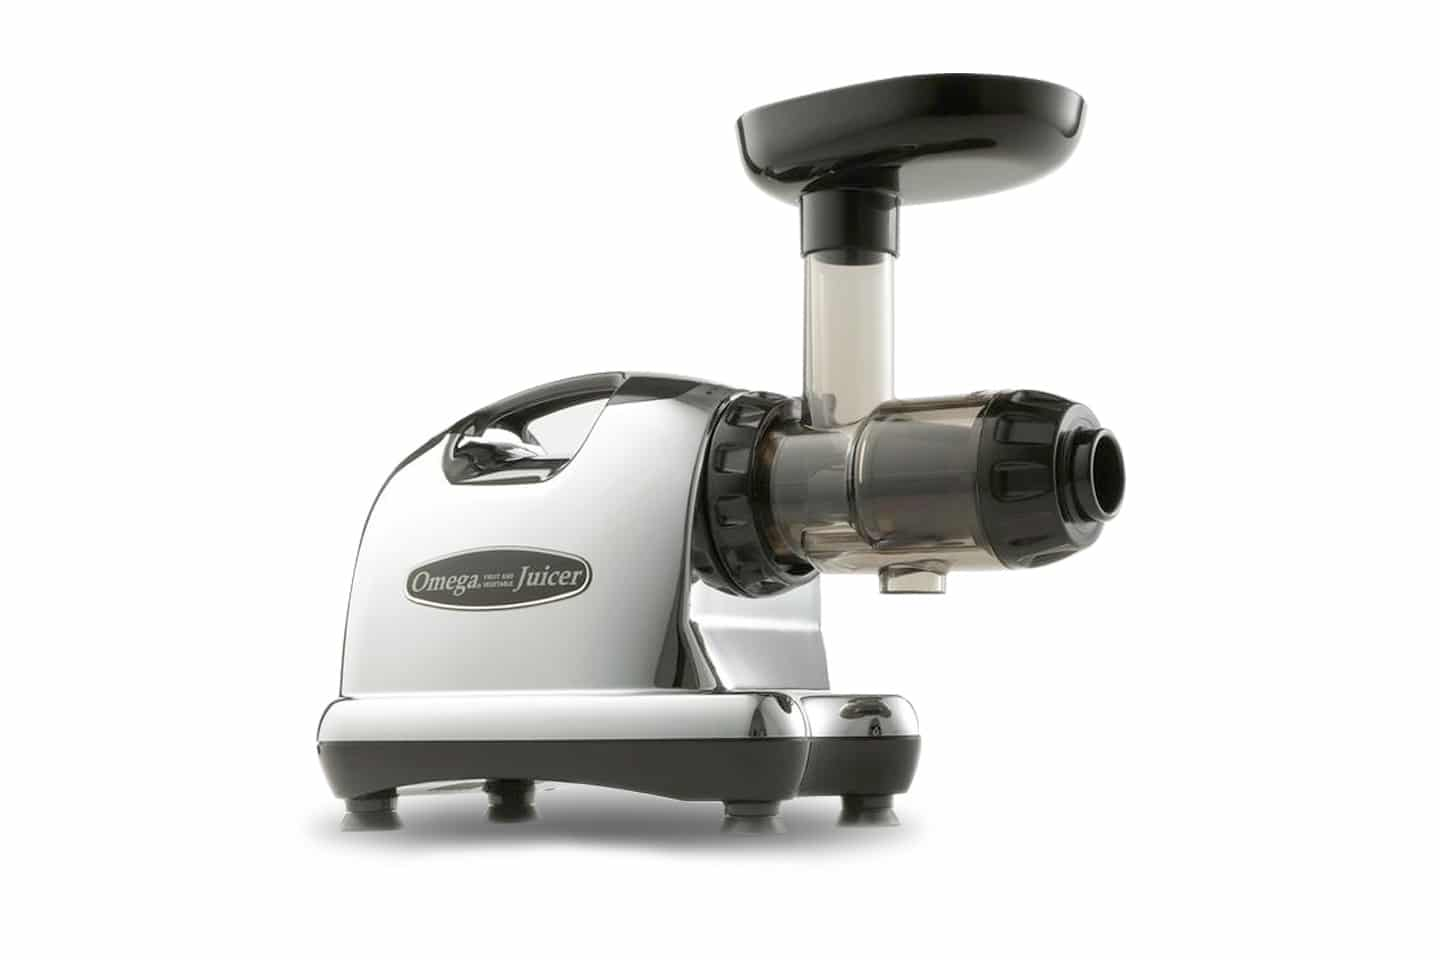 Omega 8006 Classic Juicer & Nutrition Center Review | HeartyBlends.co